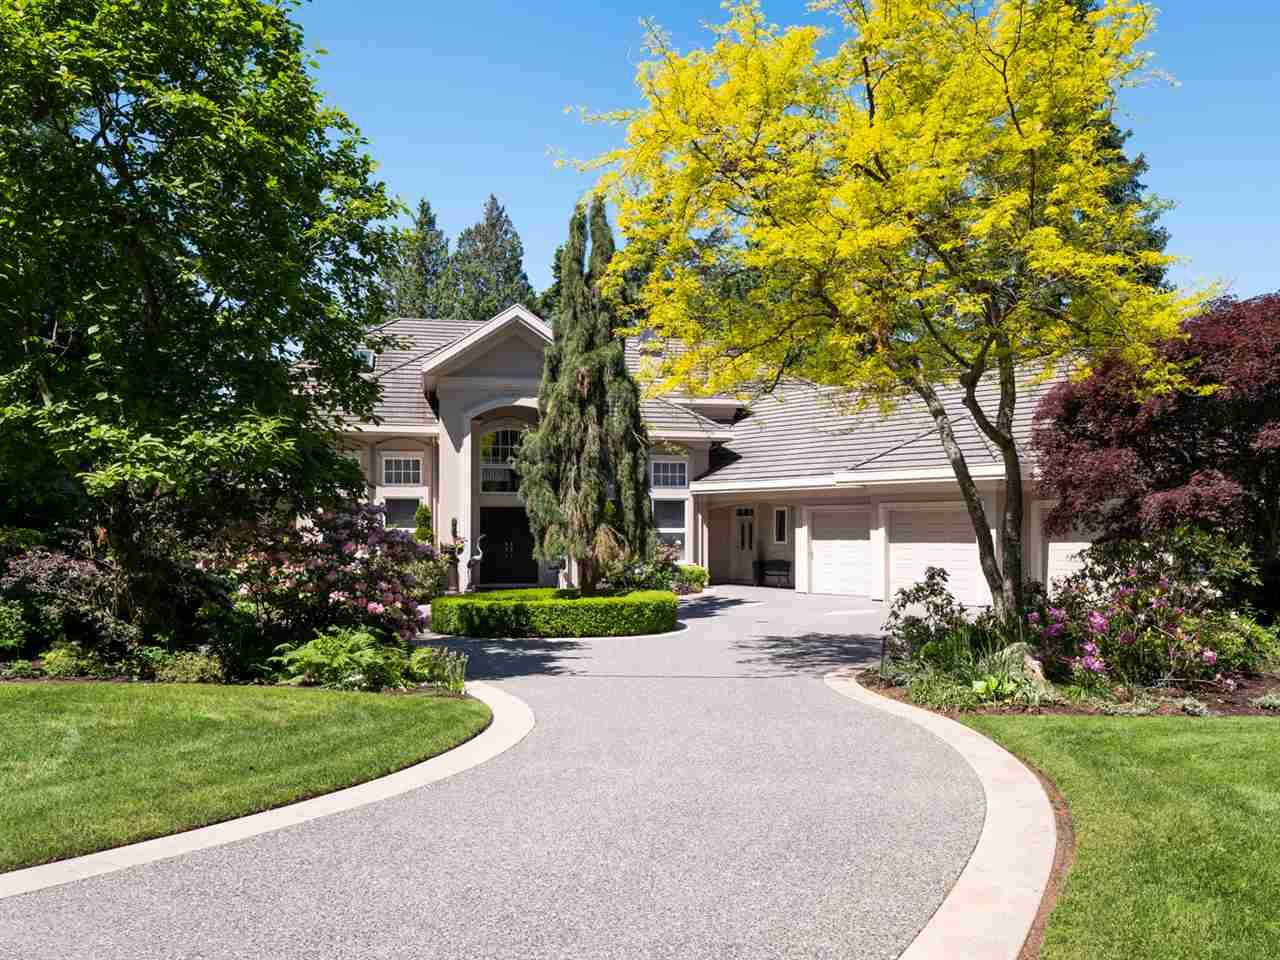 """Main Photo: 13375 CRESCENT Road in Surrey: Elgin Chantrell House for sale in """"WATERFRONT CRESCENT ROAD"""" (South Surrey White Rock)  : MLS®# R2531349"""